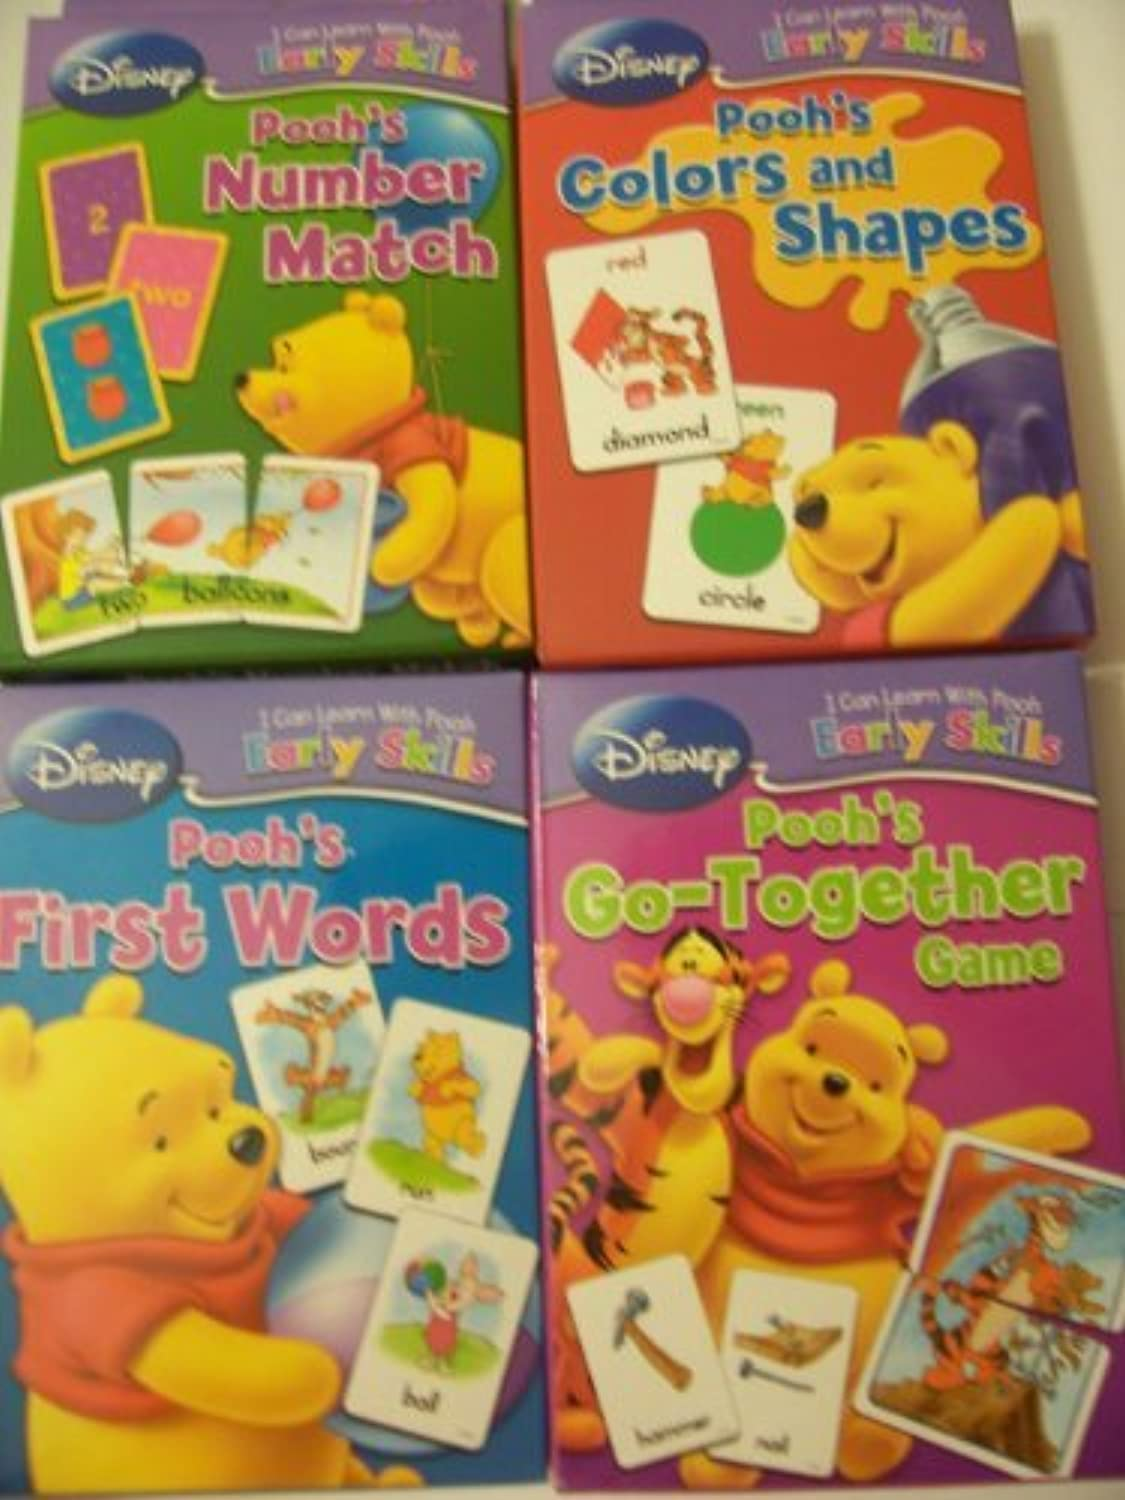 Disney I Can Learn with Pooh Early Skills Card Games  Complete Set (First Words, Number Match, colors & Shapes, GoTogether Game) by Winnie the Pooh